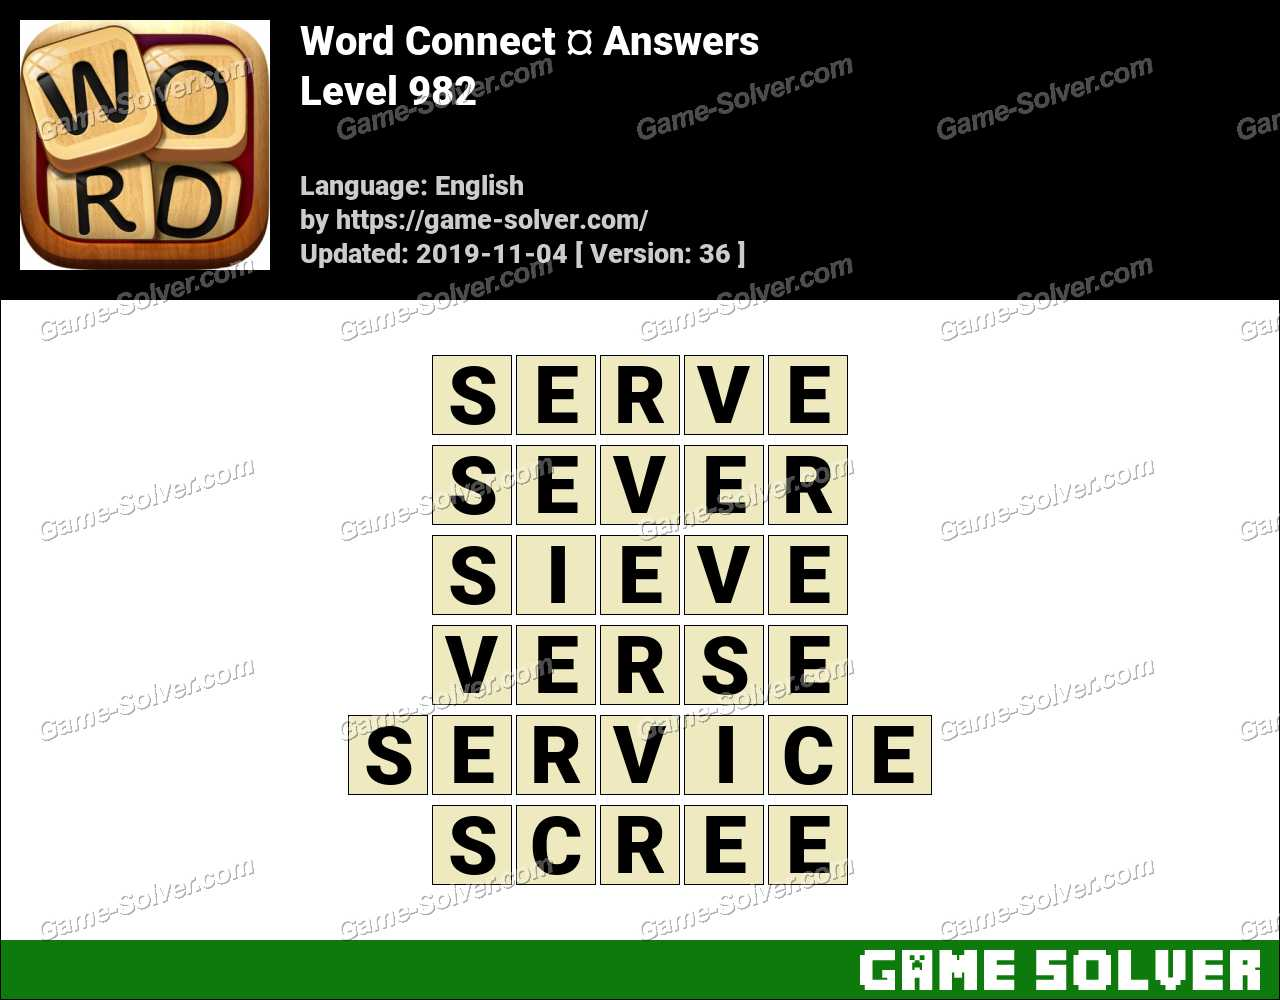 Word Connect Level 982 Answers